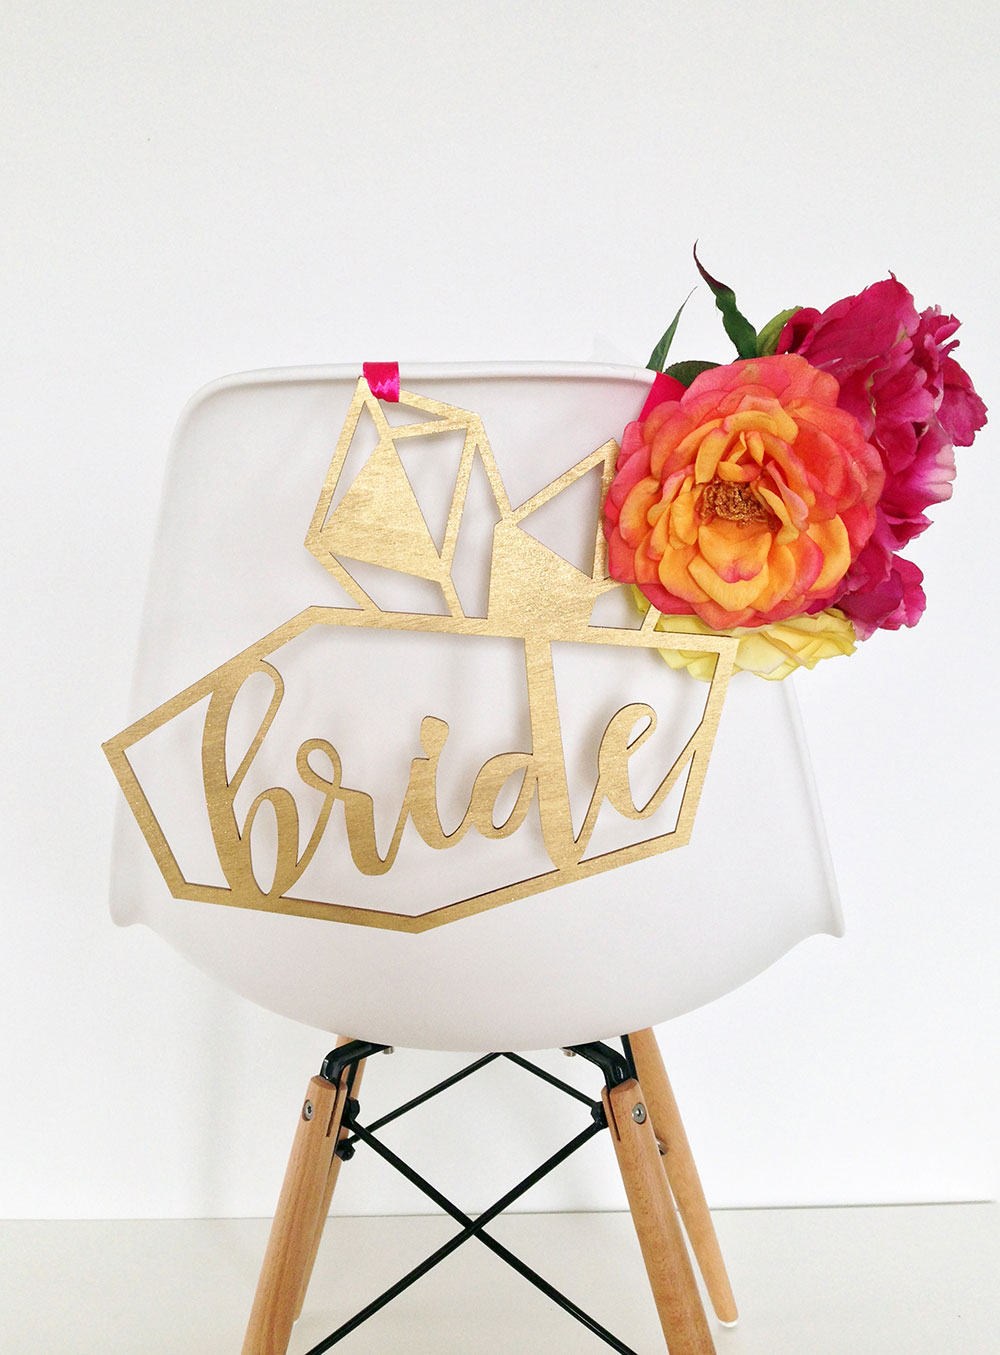 Custom designed laser cut wedding chair hangers by Sweet Escape Occasions